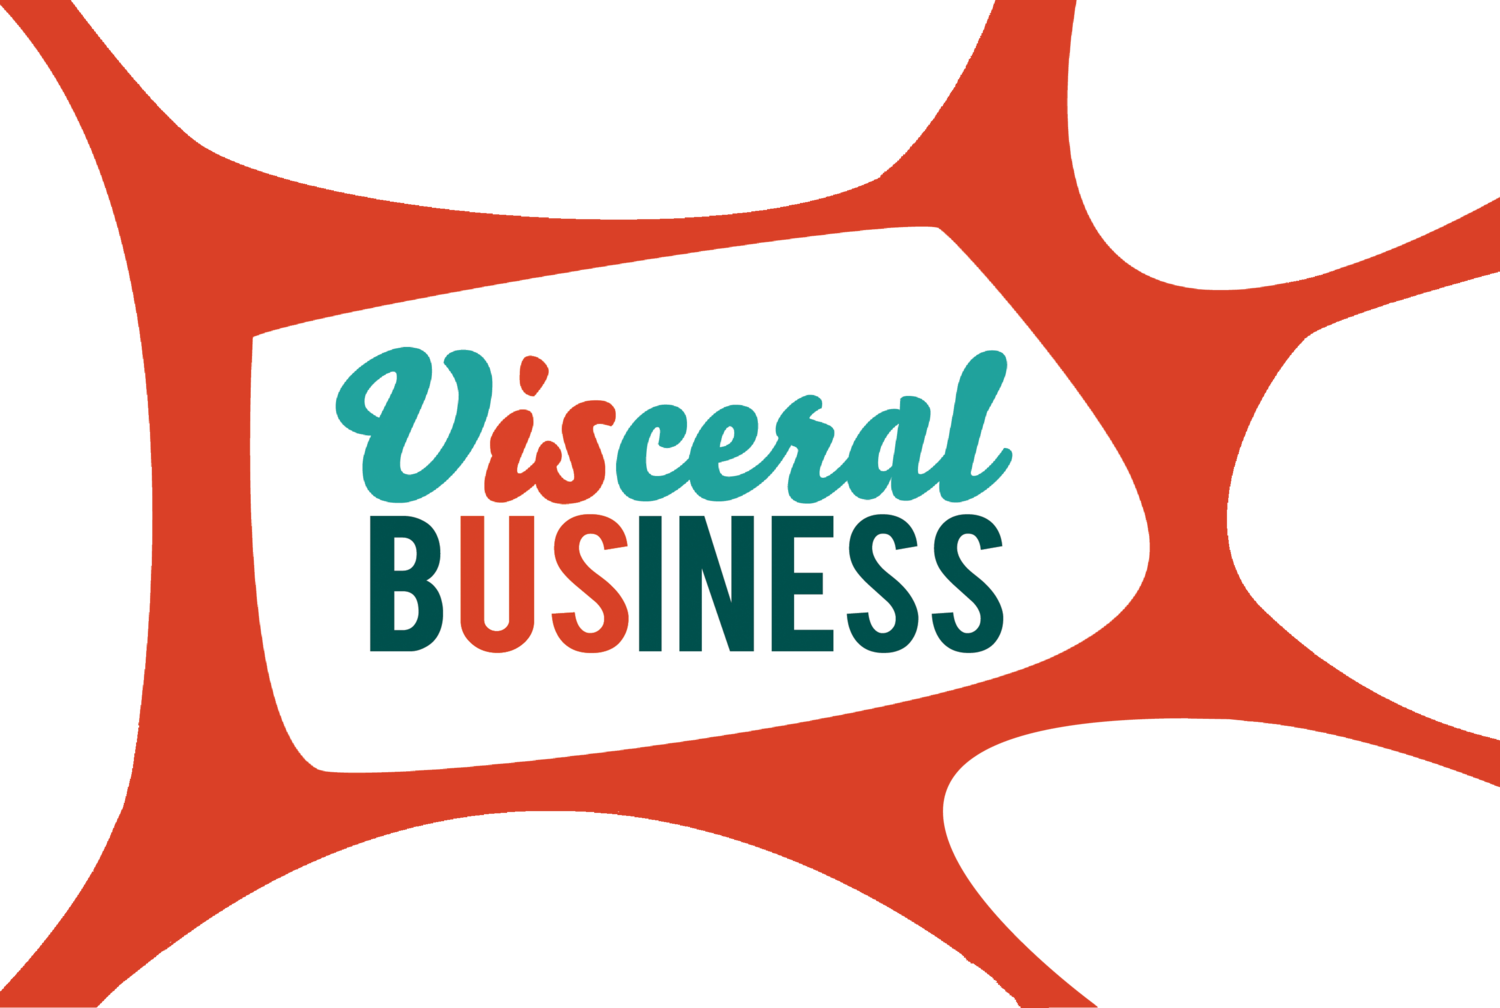 Visceral Business